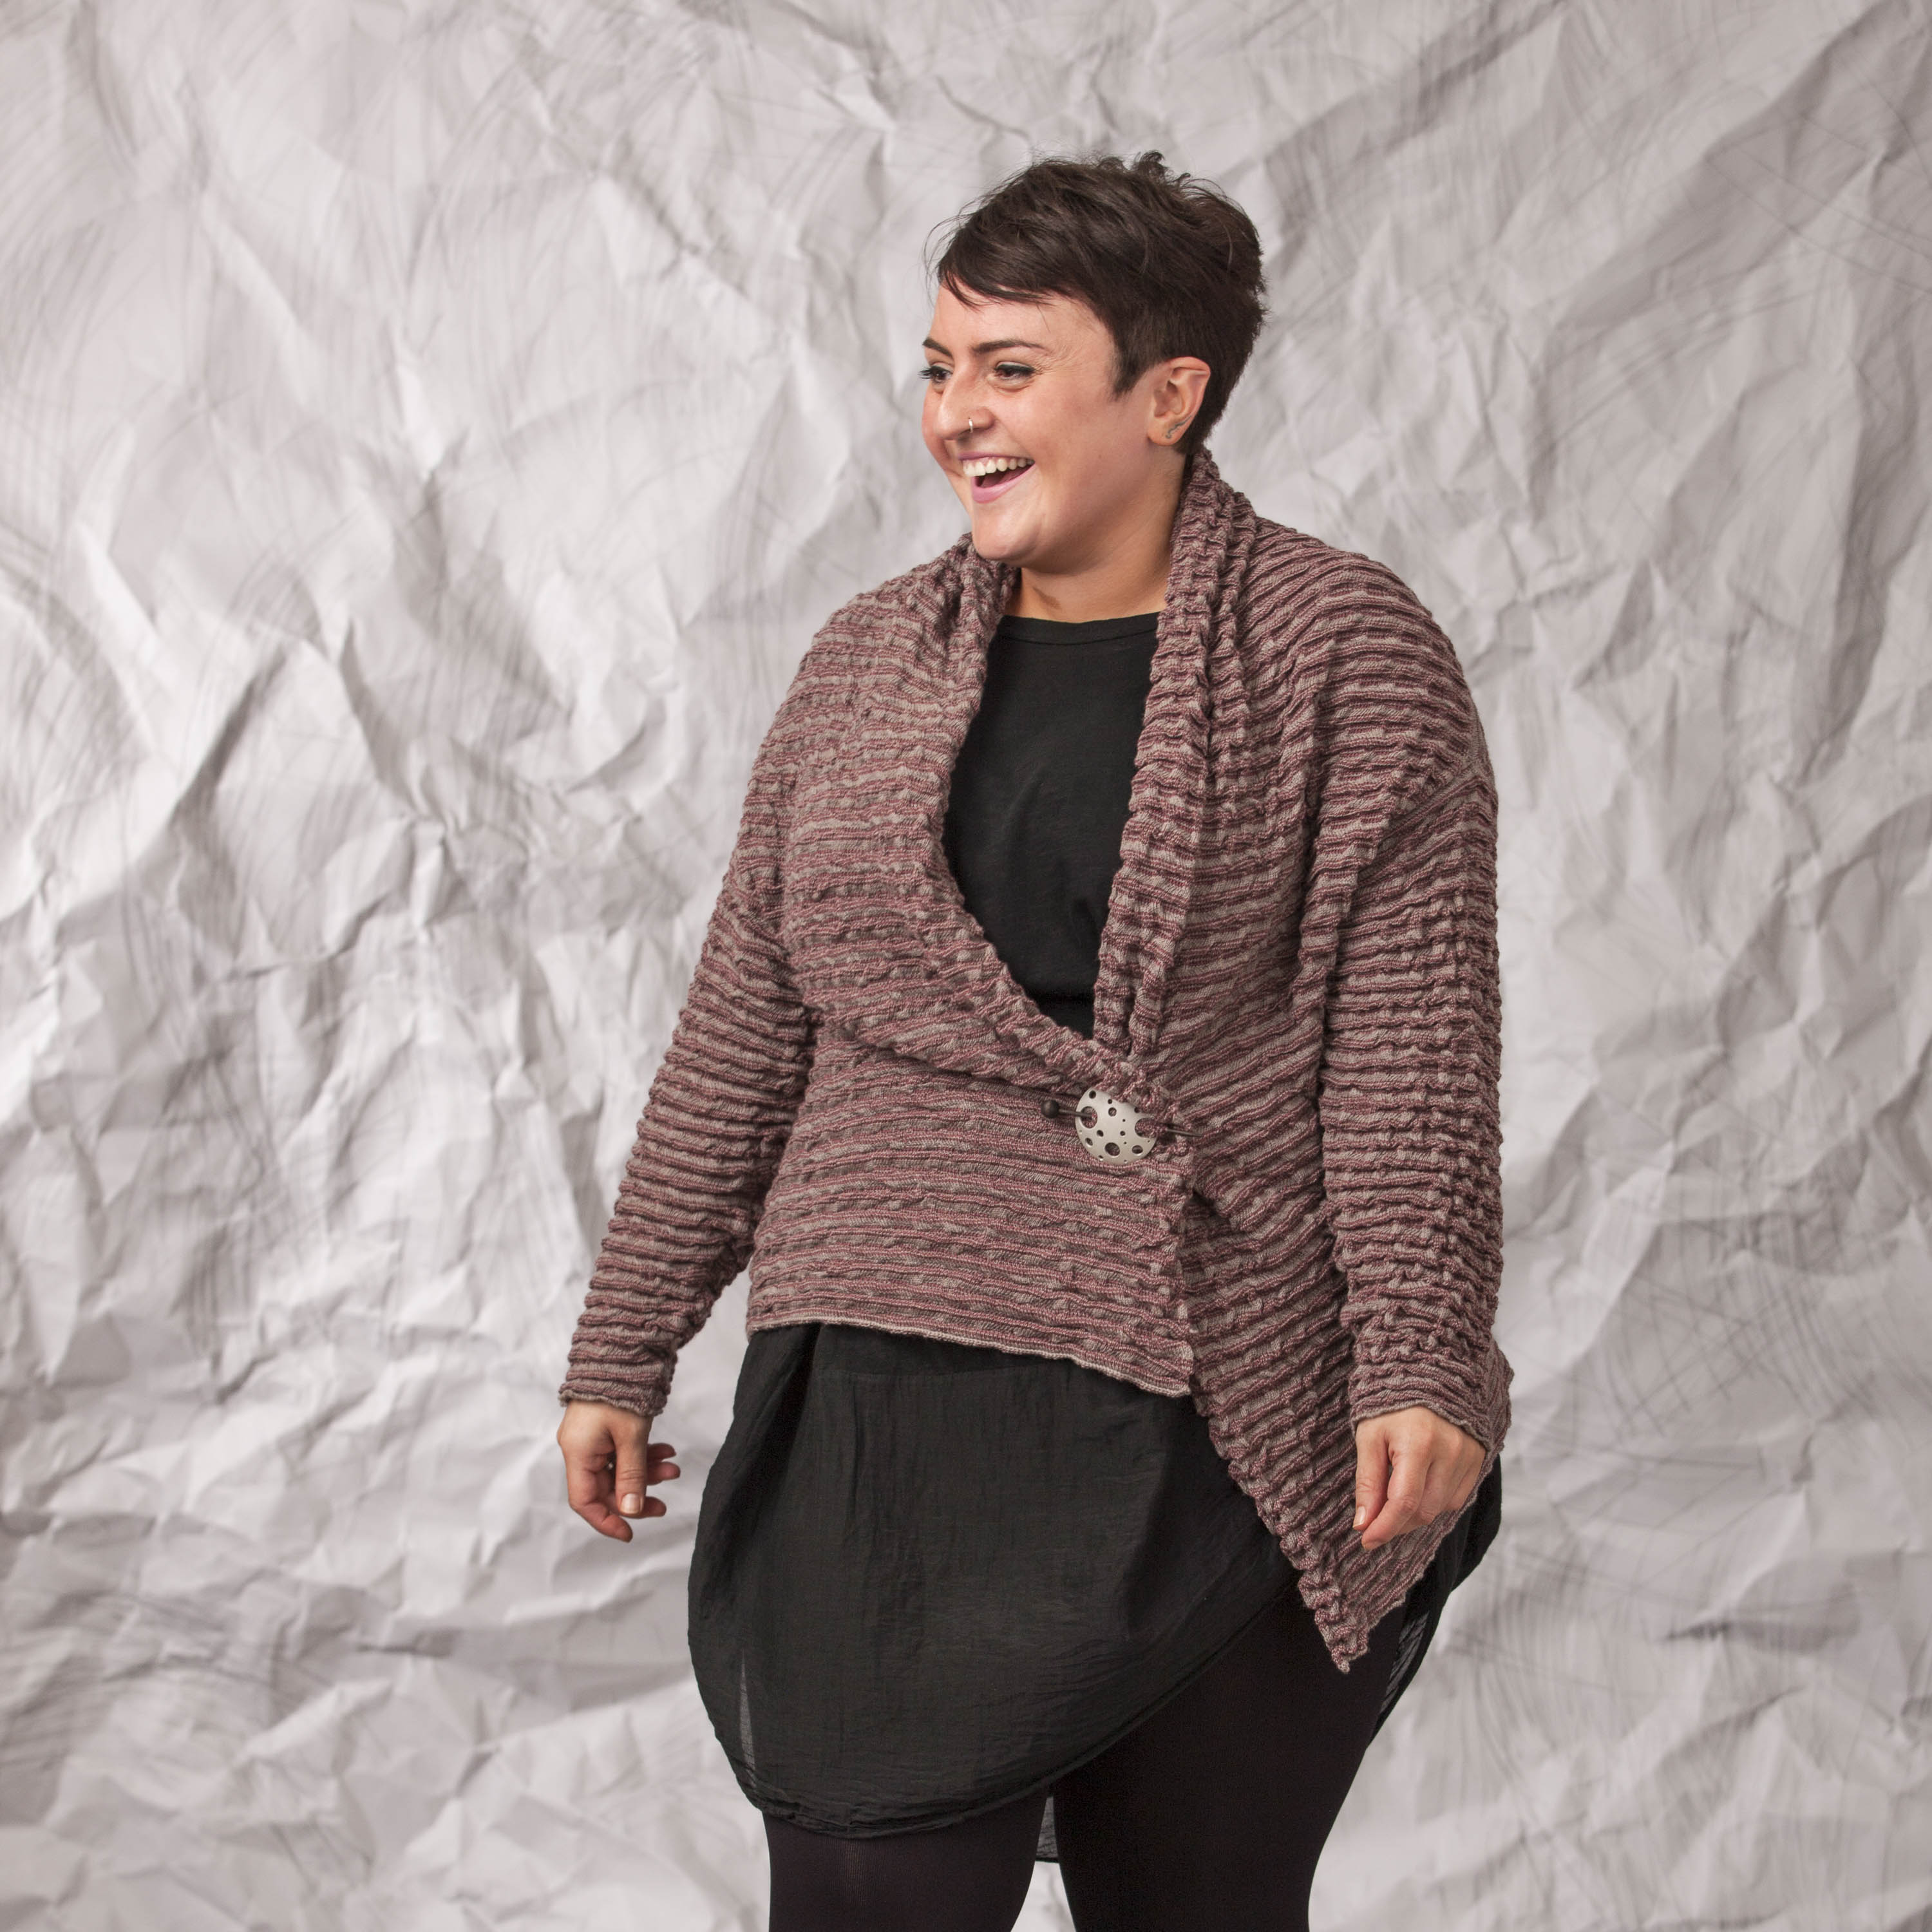 Model wears a long Vaarie Jacket in warm grey and morello over a black dress. The jacket is a slouchy open cardigan in a softly ridged, textural knit.